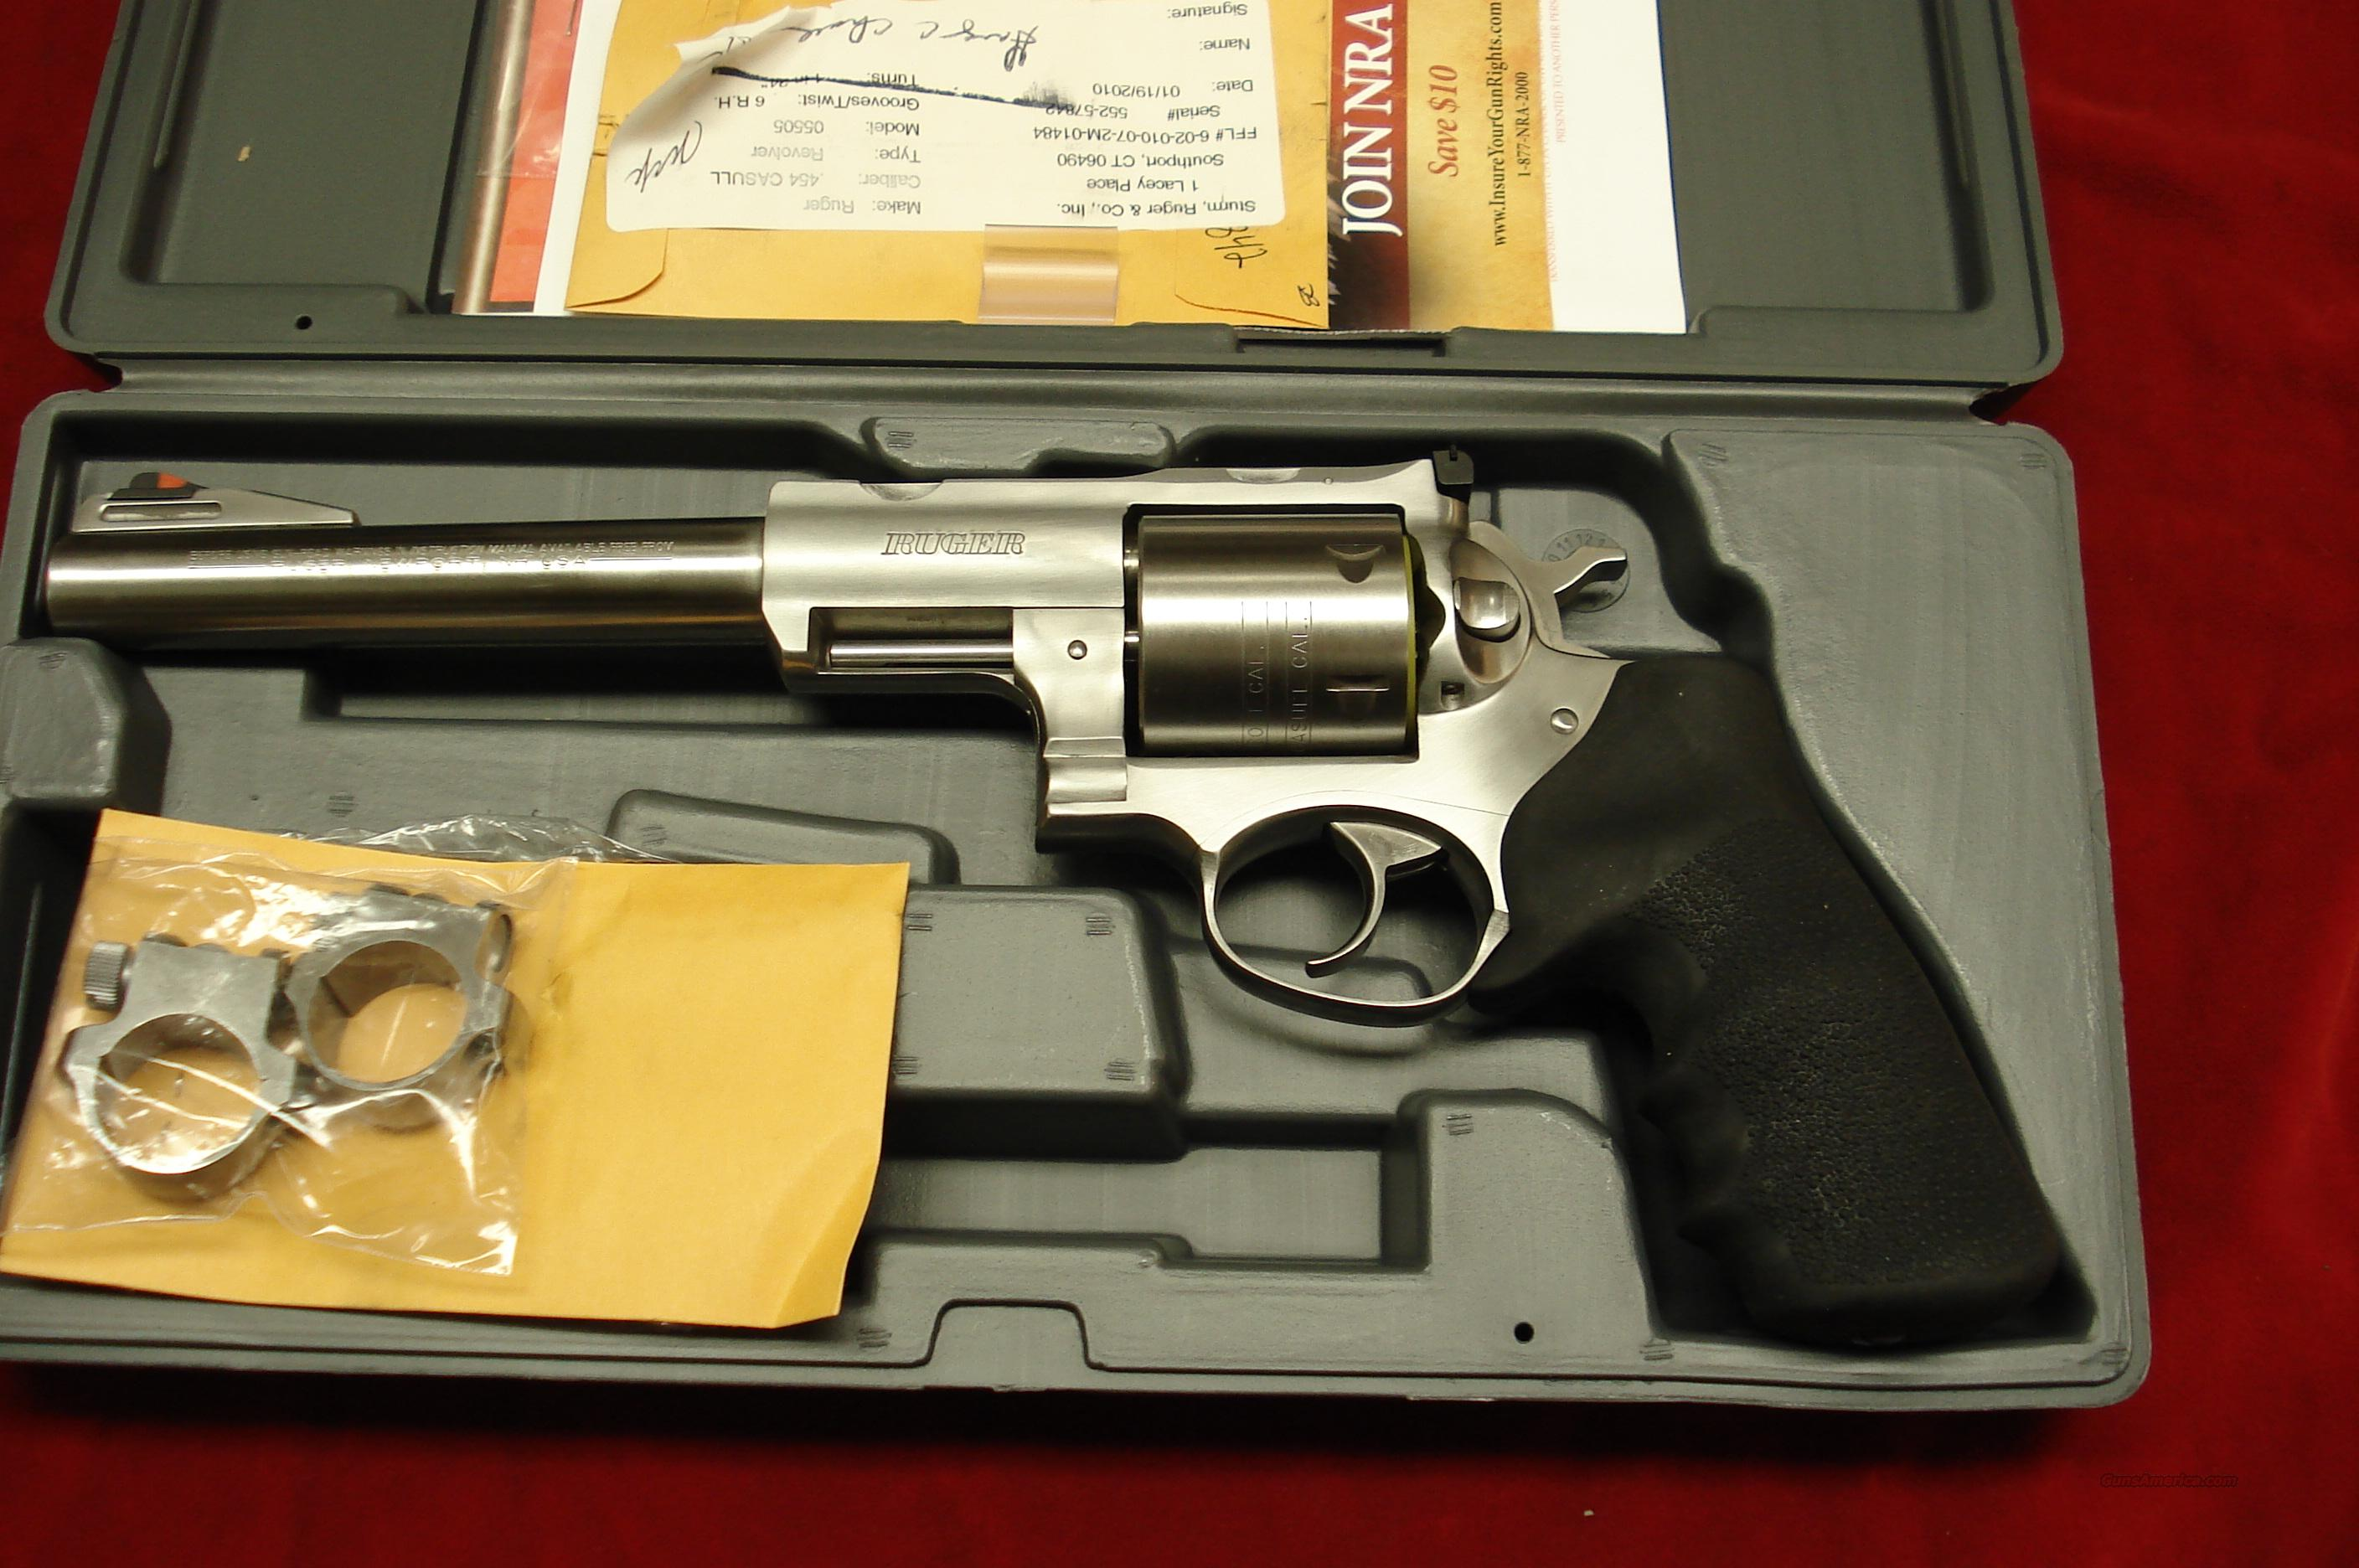 "RUGER SUPER REDHAWK HUNTER 7.5"" STAINLESS 454CASULL WITH RINGS NEW IN THE BOX (KSRH-7454)  Guns > Pistols > Ruger Double Action Revolver > Redhawk Type"